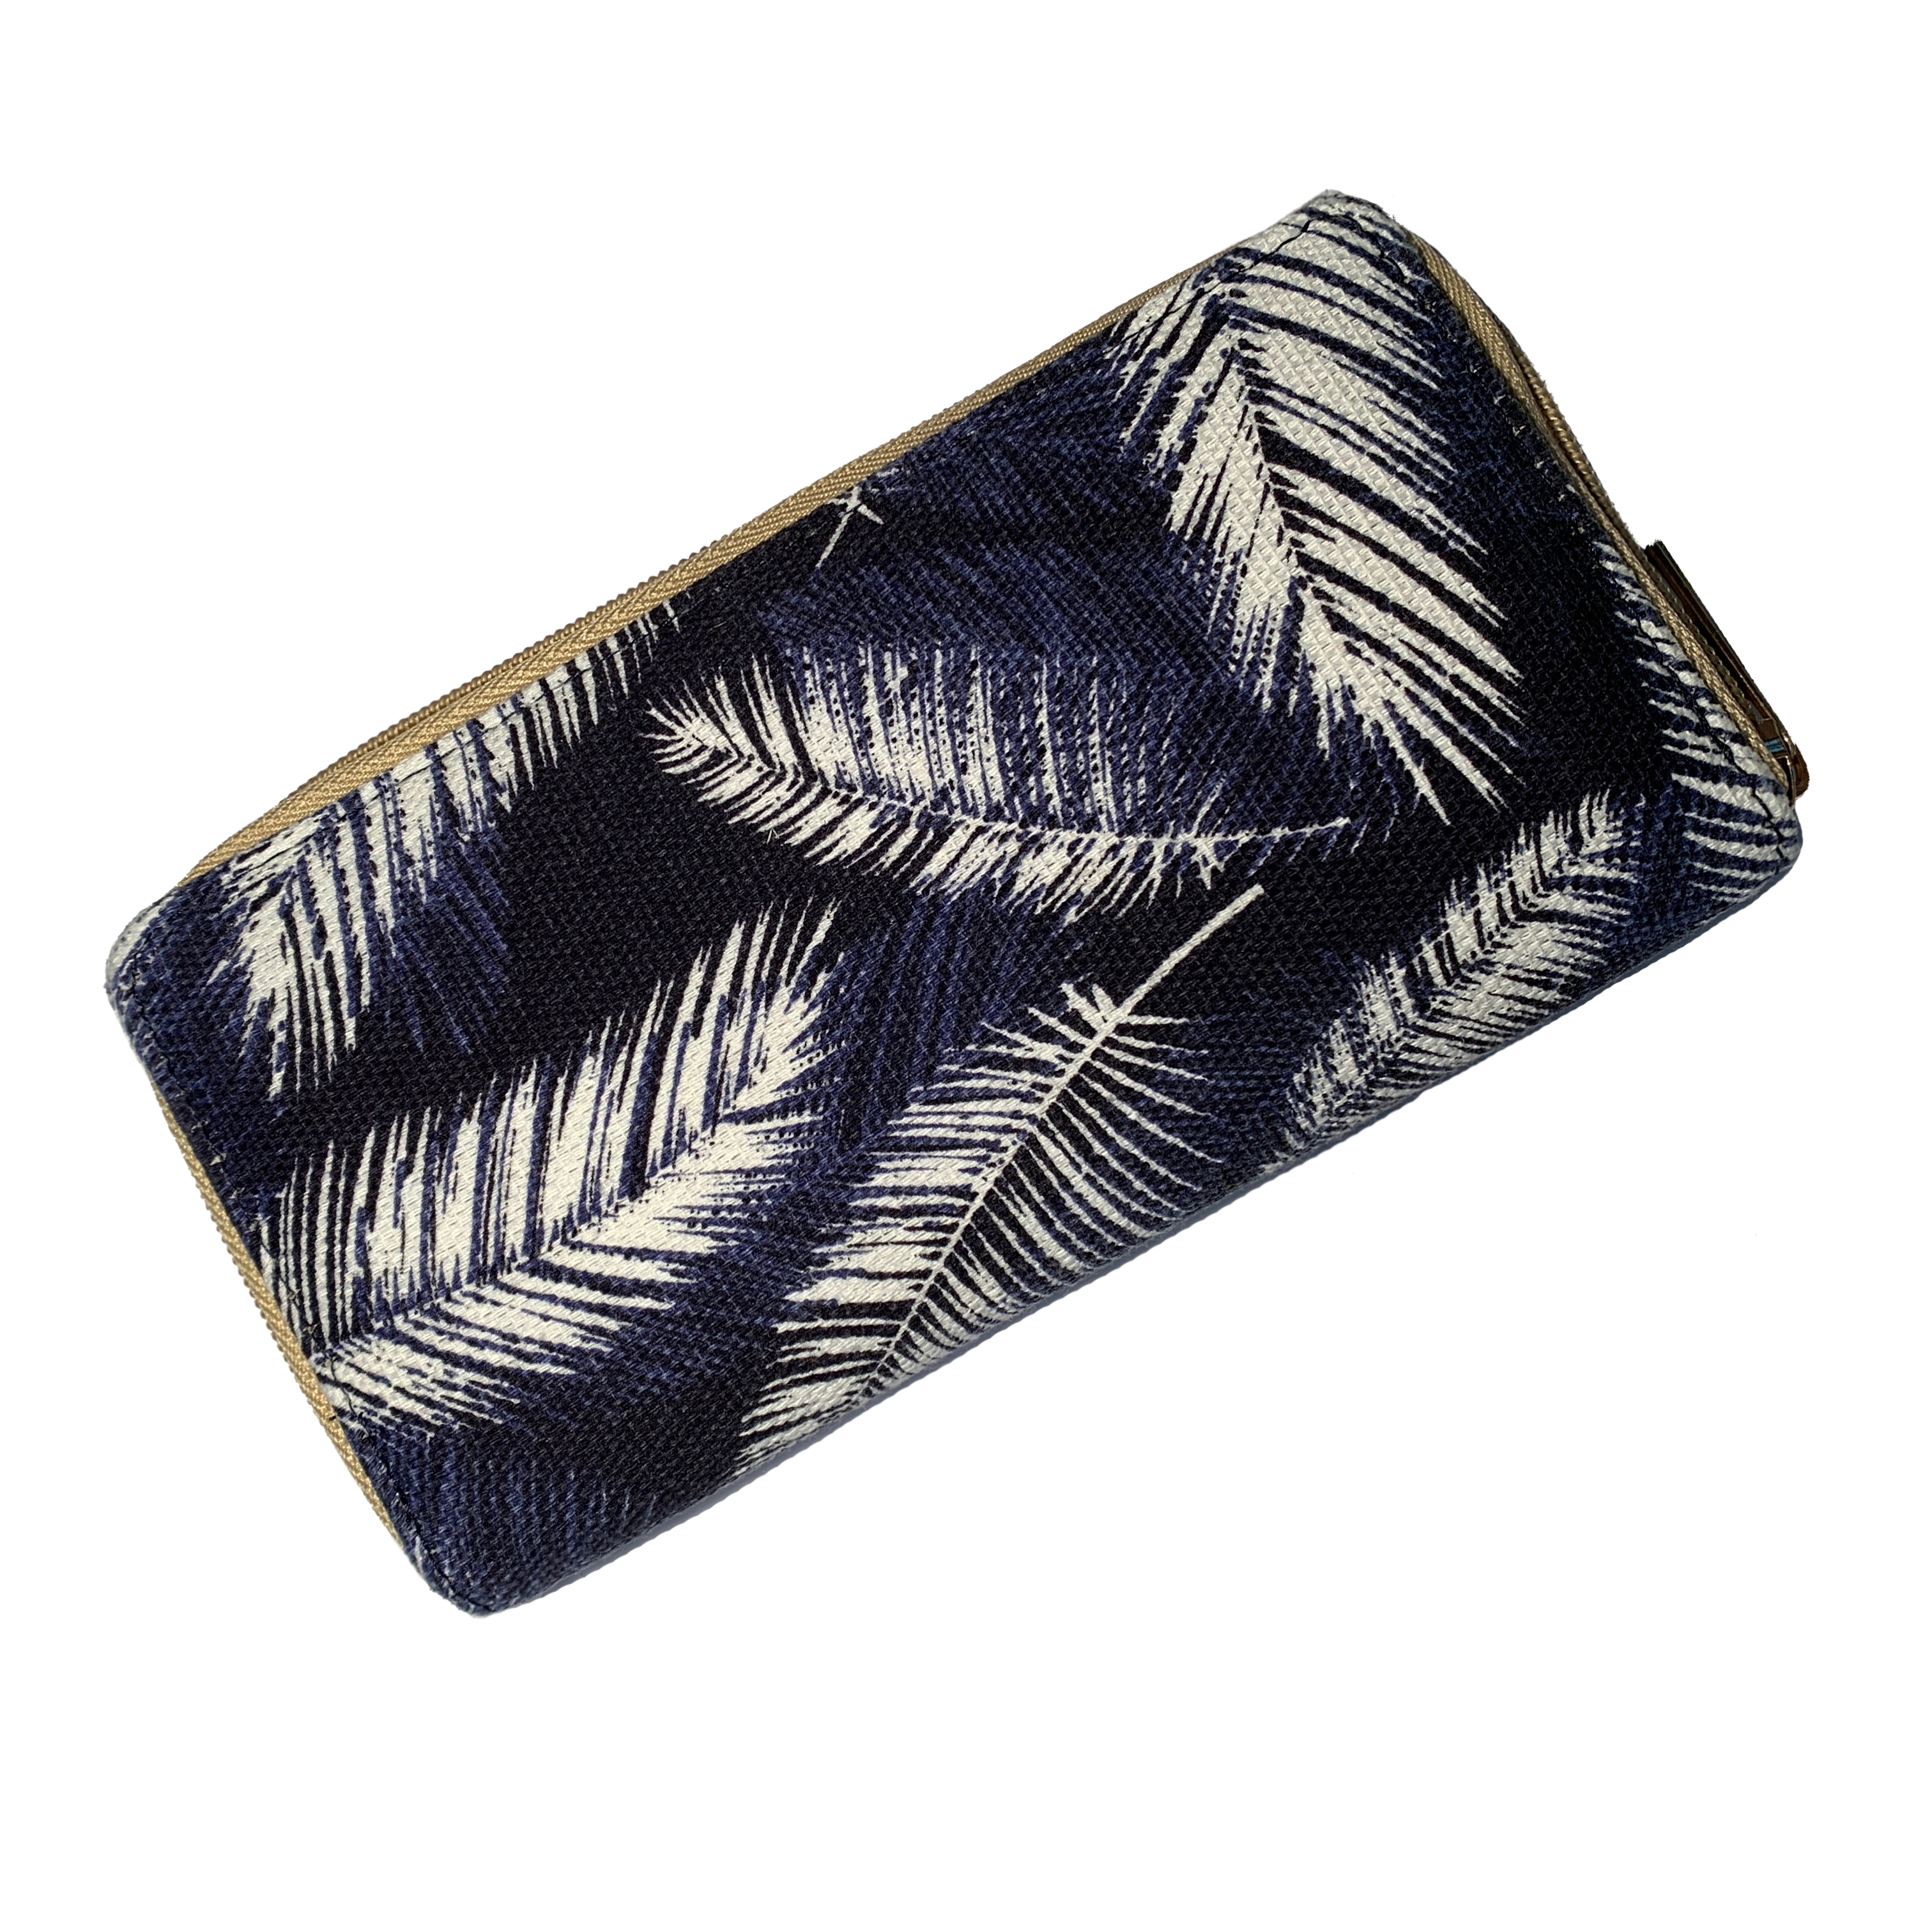 Feather Purse - Navy